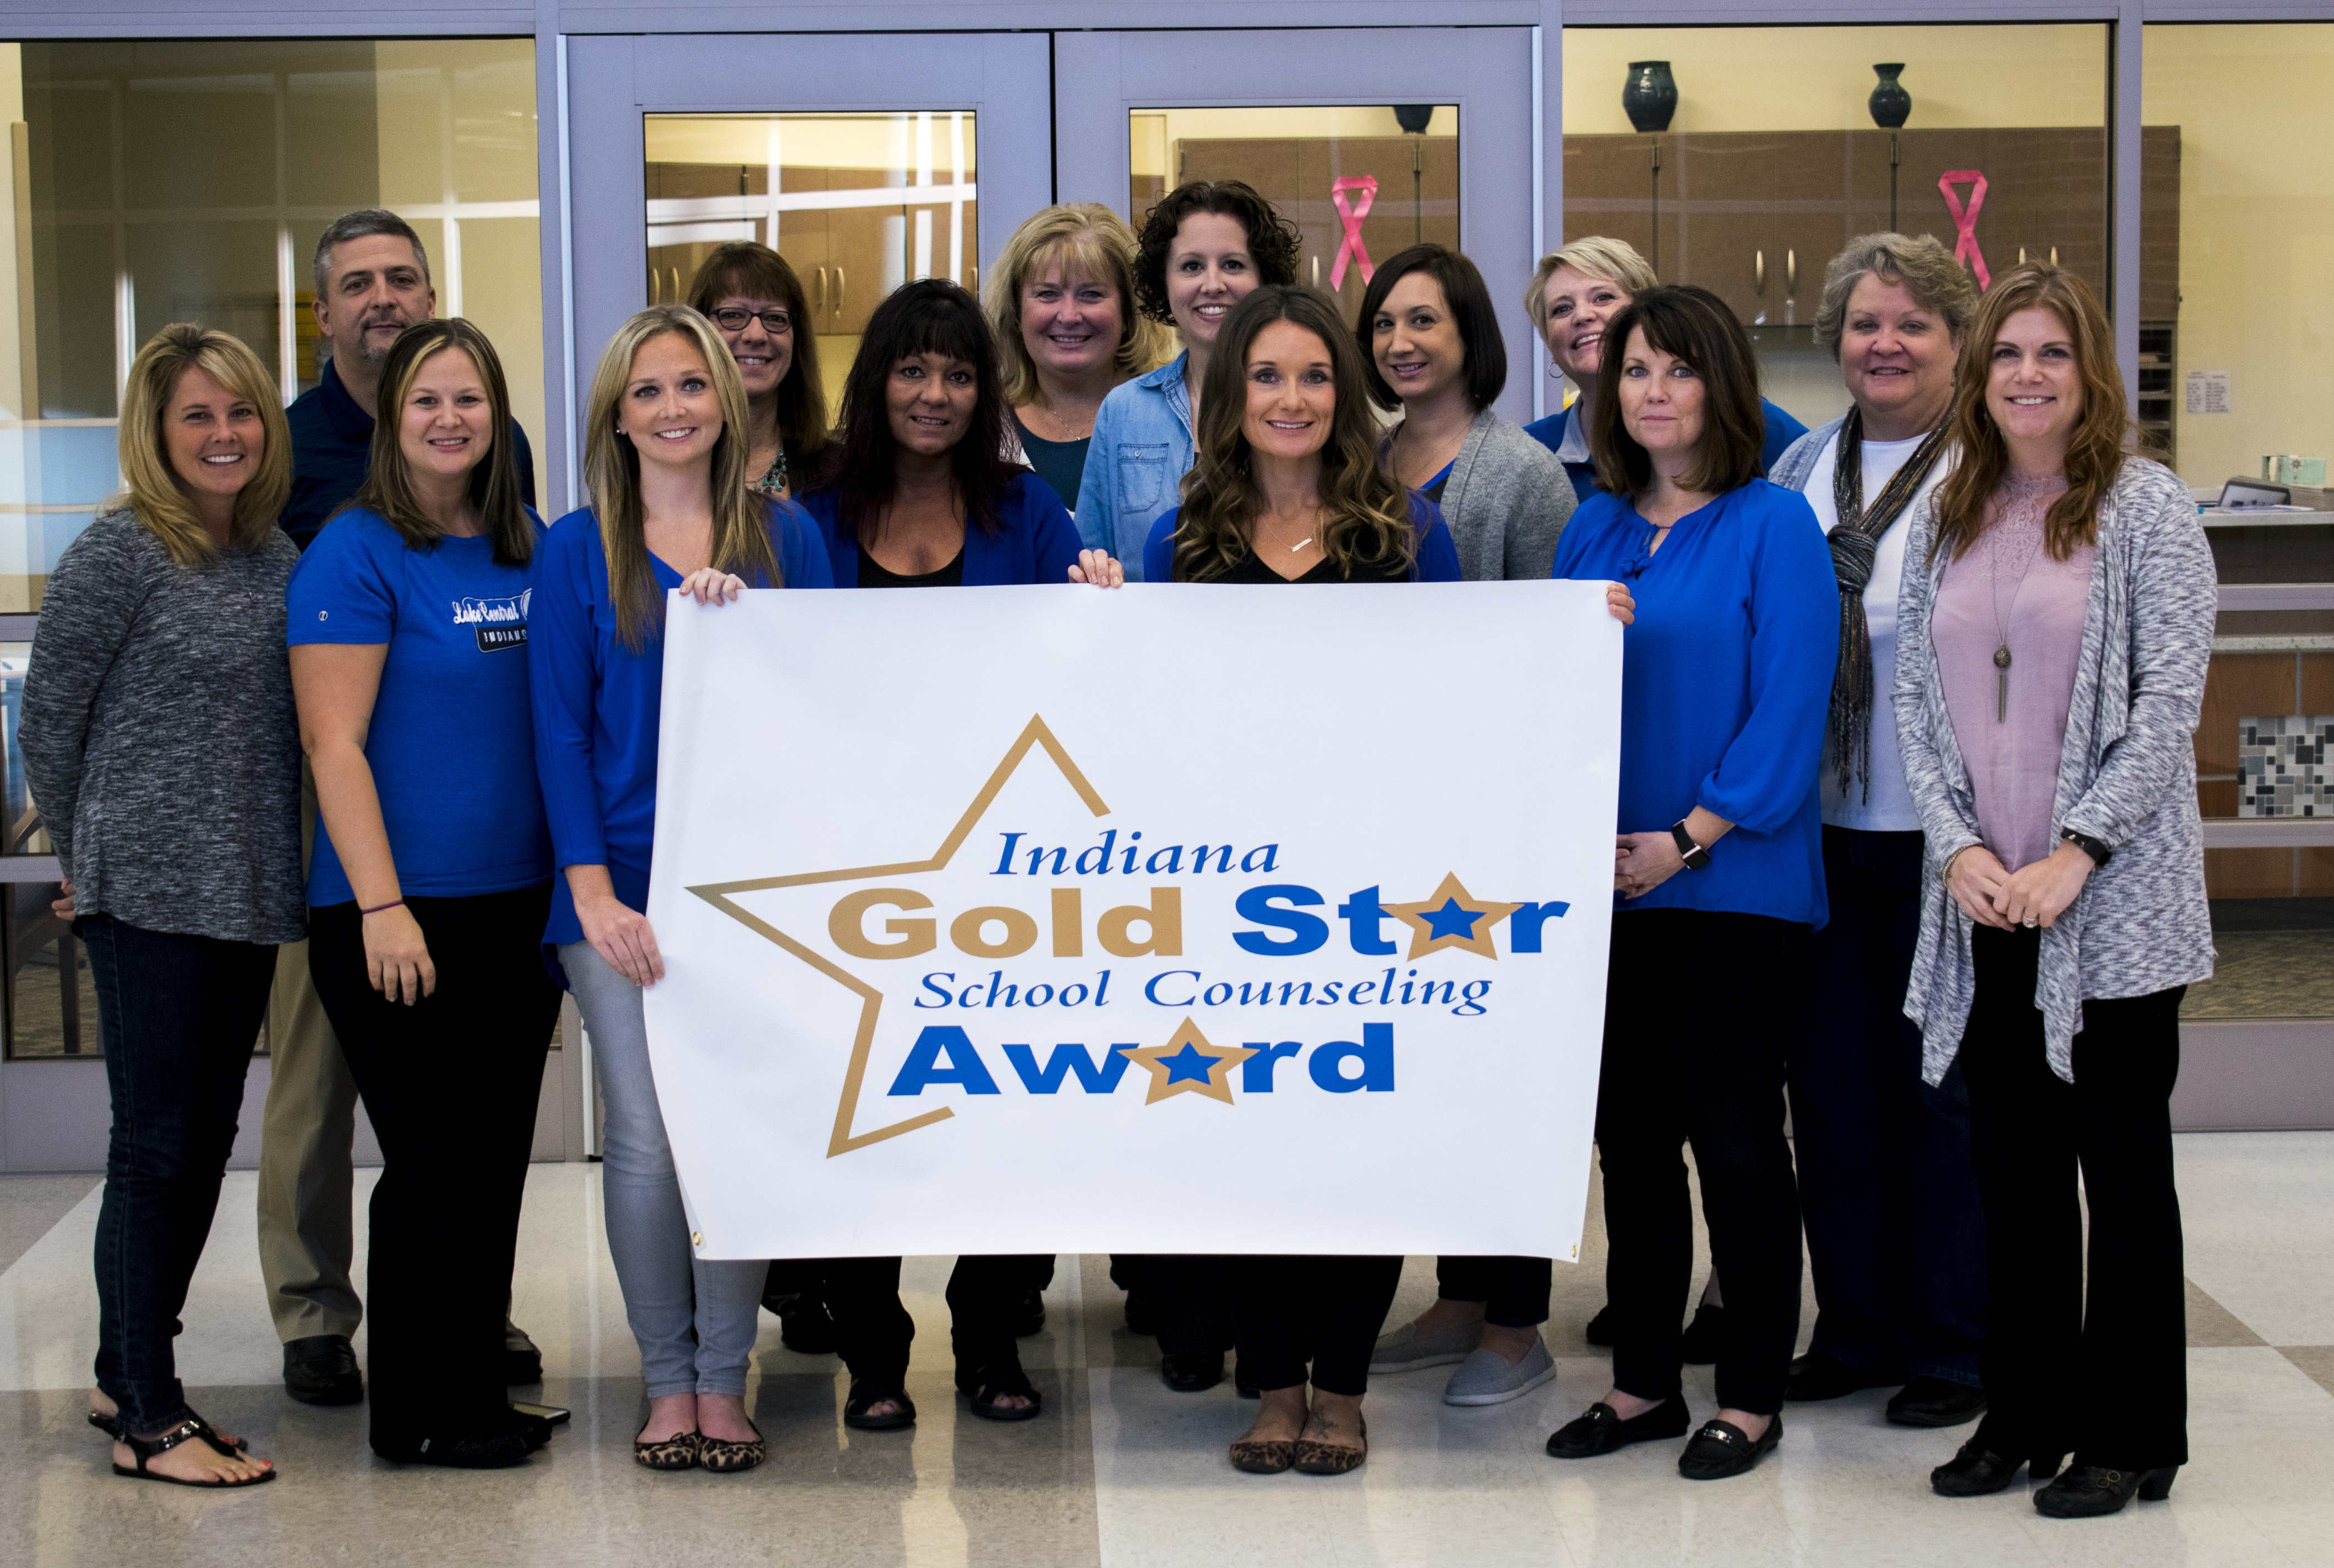 LCHS counseling staff proudly display the banner they received for earning the Indiana Gold Star School Counseling Award.